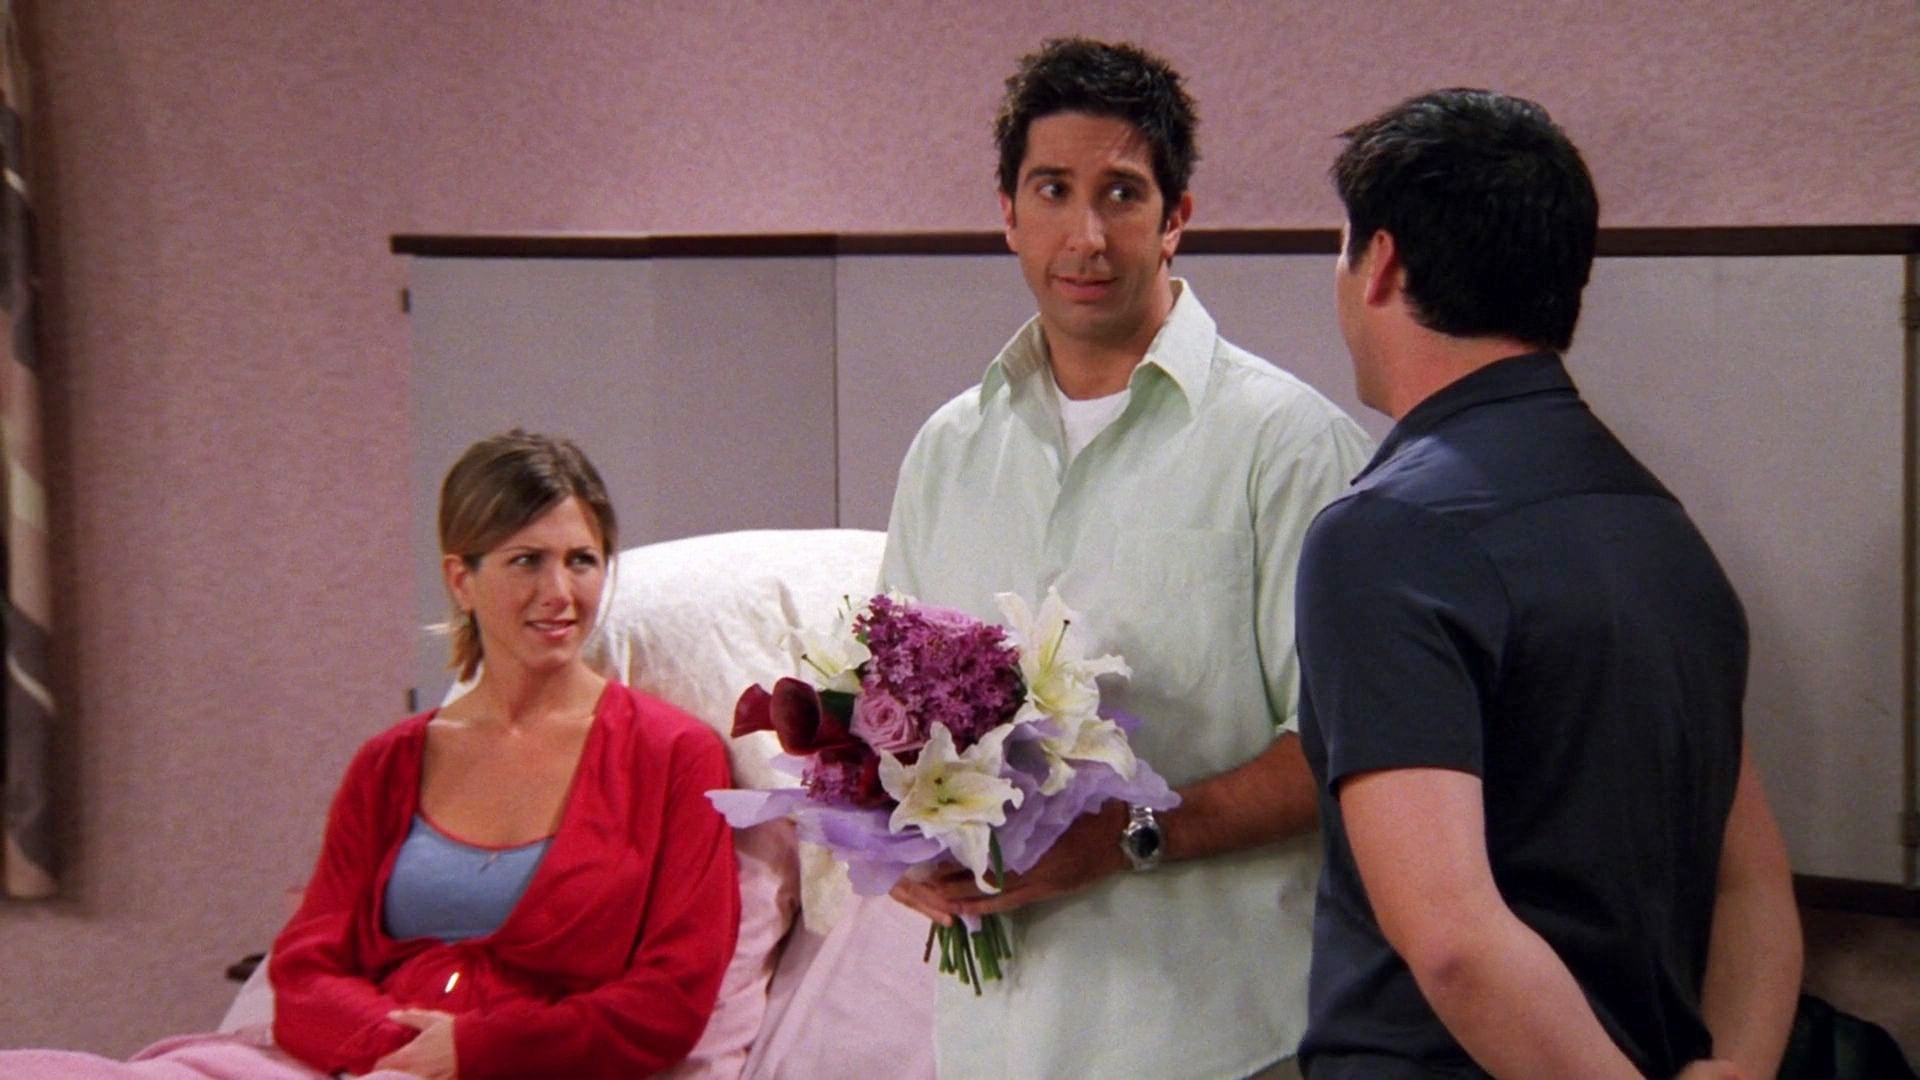 Friends - Season 9 Episode 1 : The One Where No One Proposes